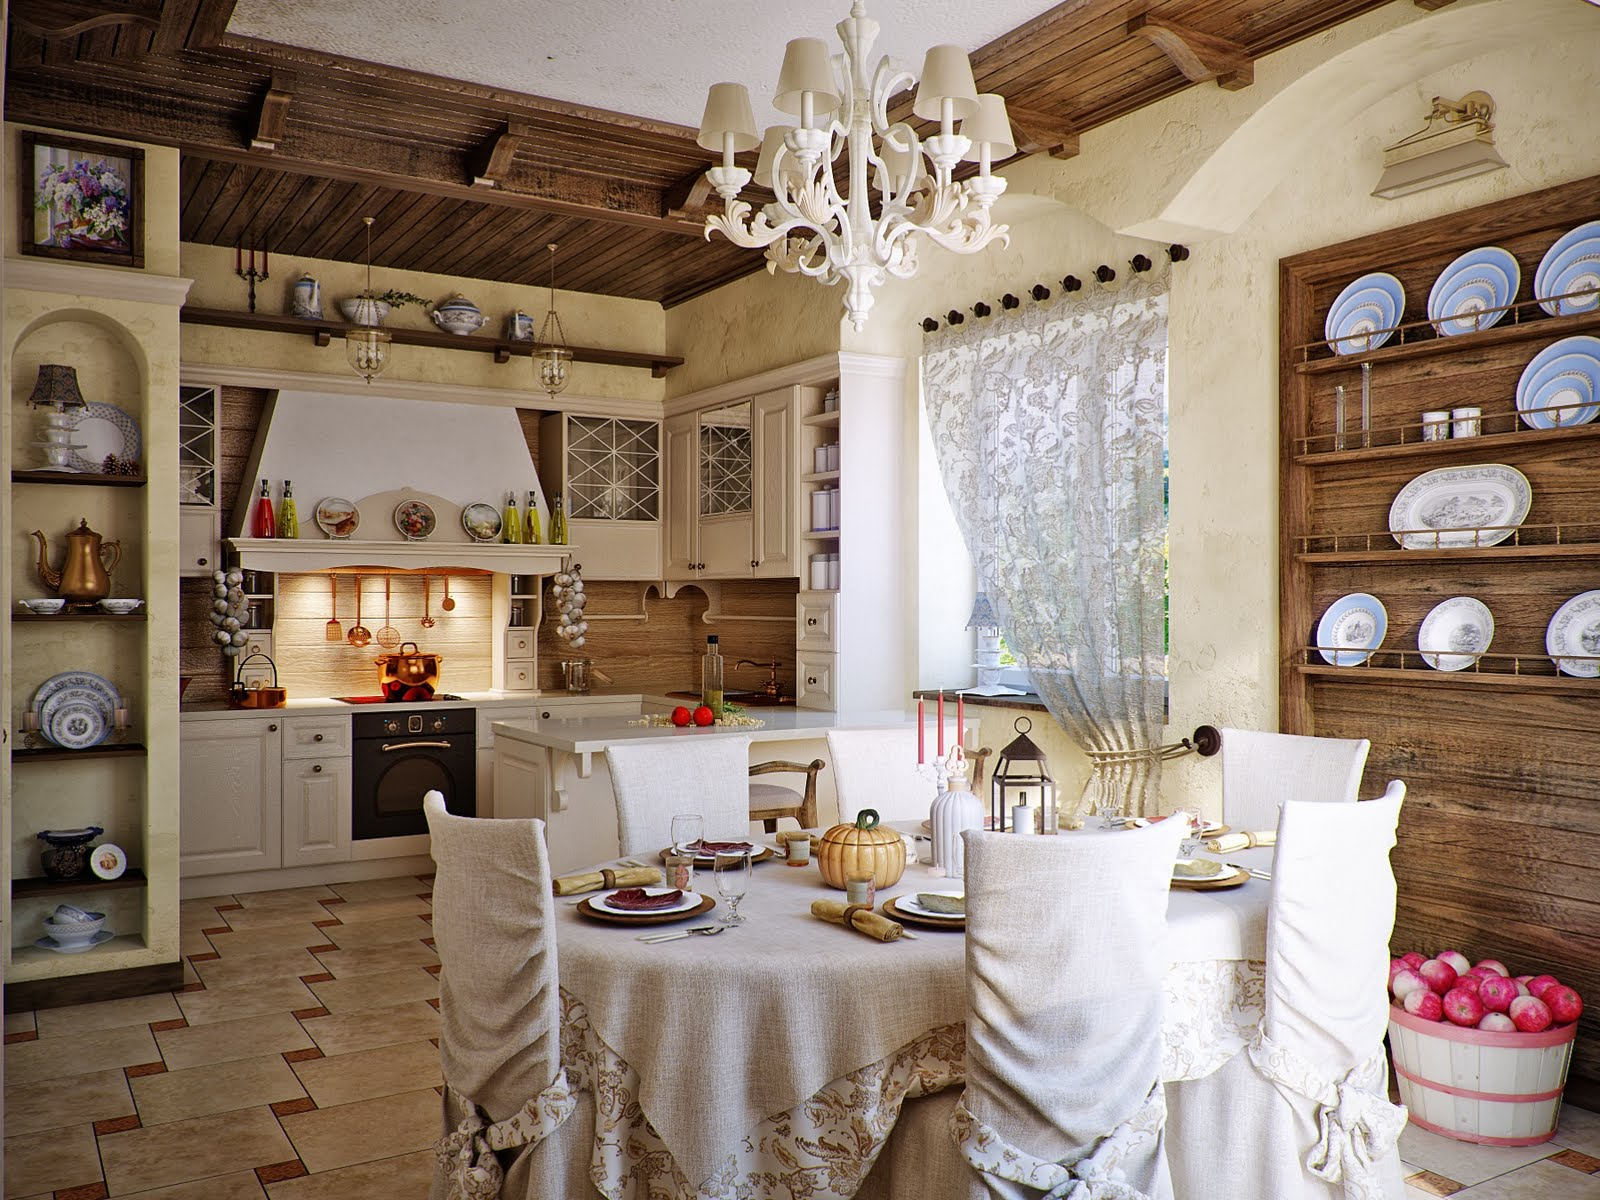 Country kitchen design by Svetlana Nezus Interior Designs .